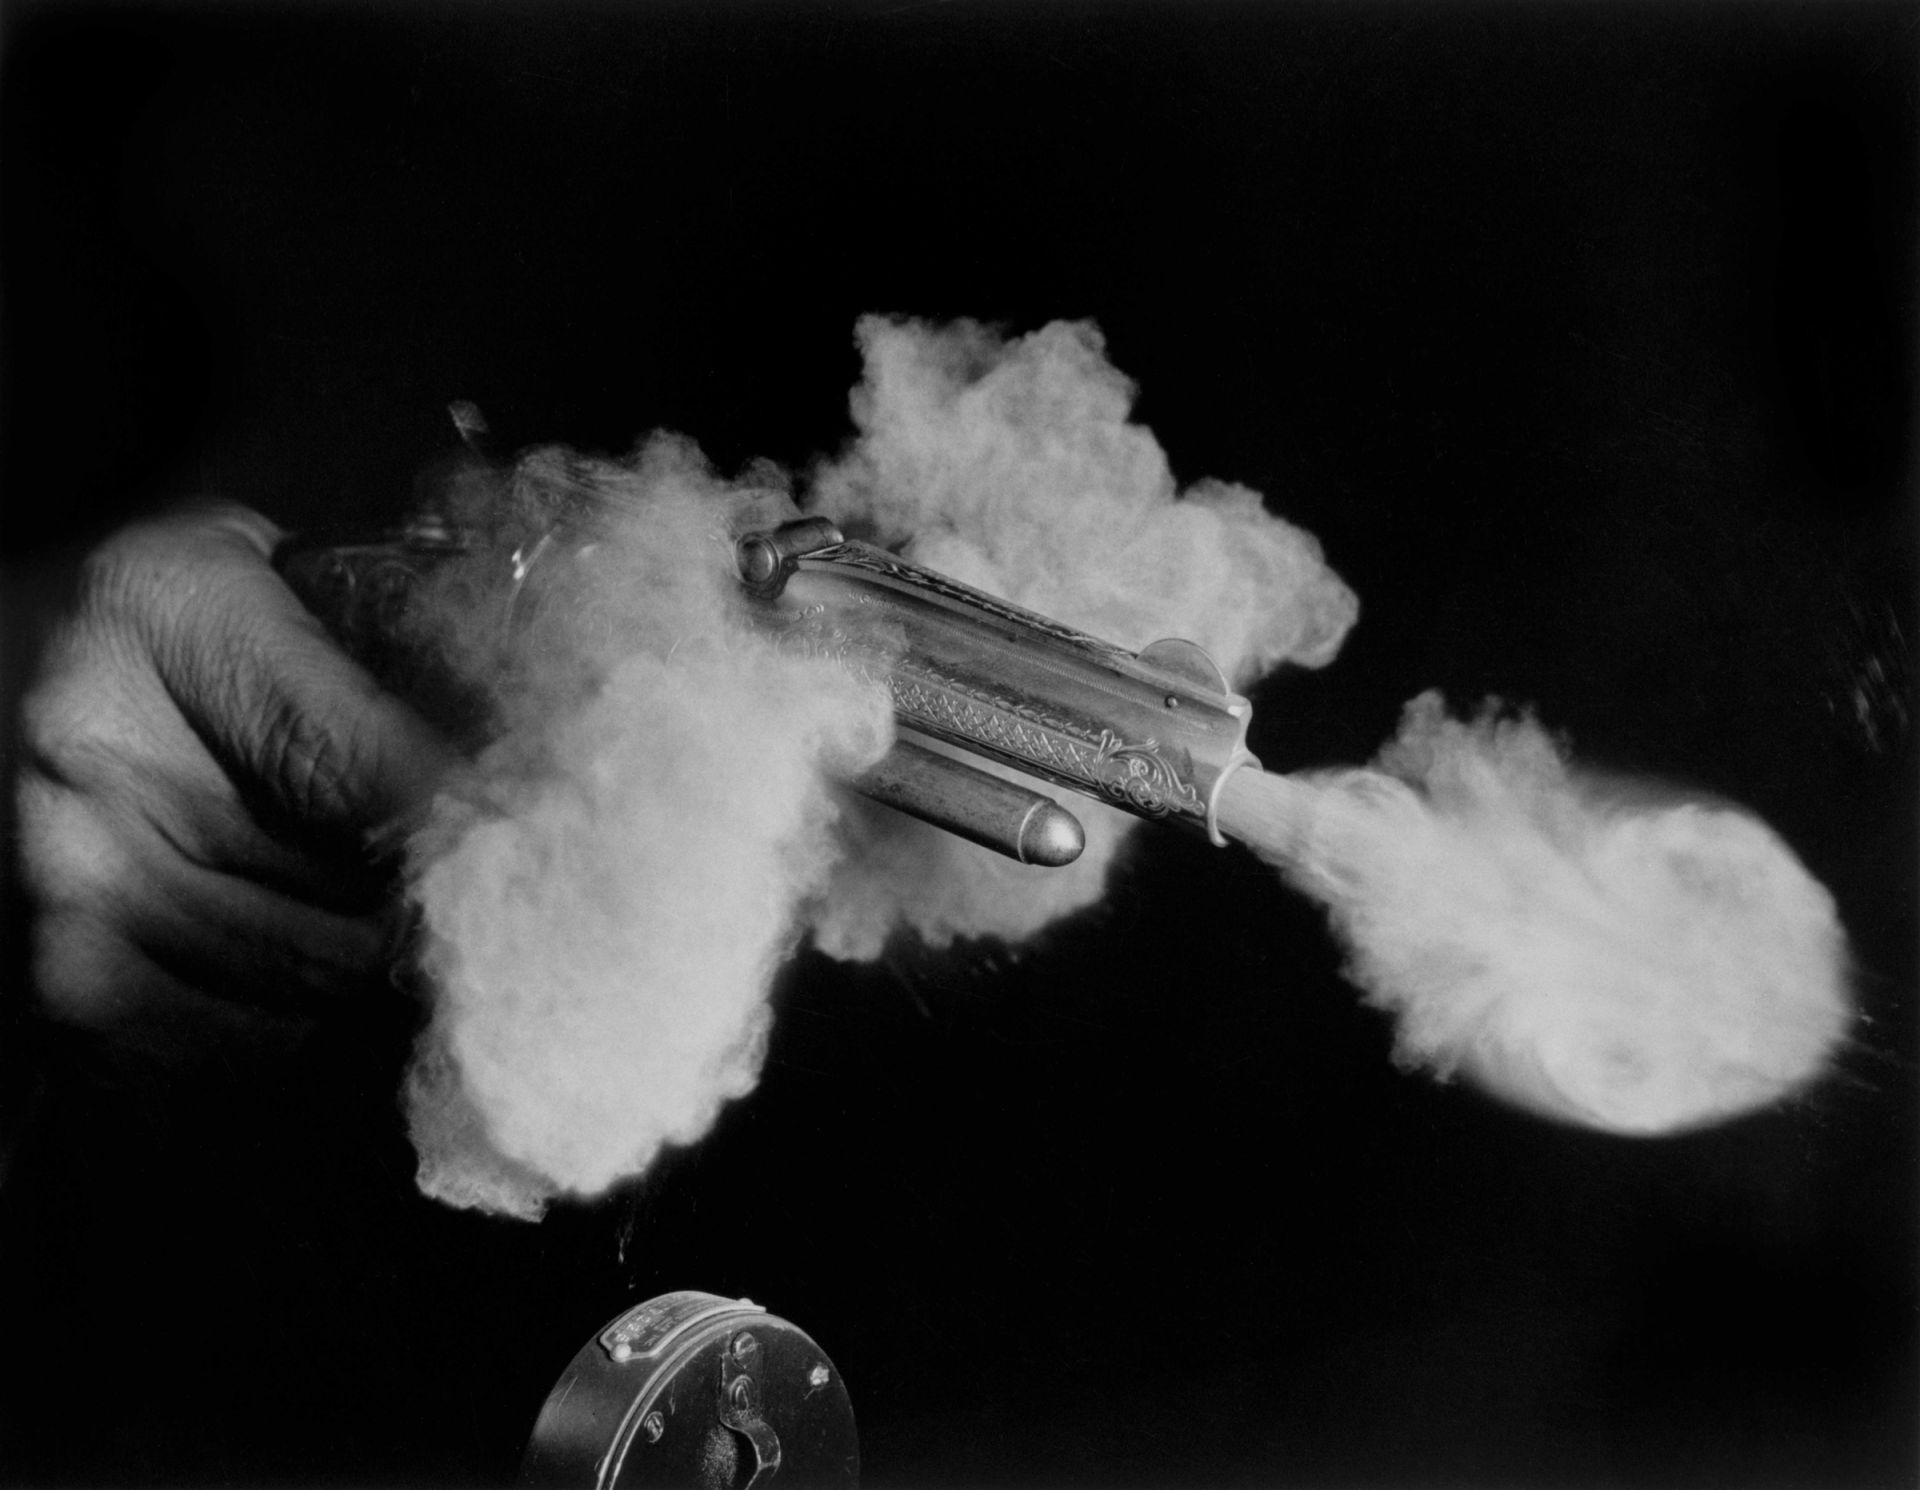 <i>Antique Gun Firing,</i> 1936<br> gelatin silver print<br> 16 x 20 inches<br> The 1878 revolver took its own picture as the explosion of the bullet going off triggered the microphone, visible in the foreground. The bullet is barely out of the muzzle, still hidden by the massive volume of smoke escaping the gun. This gives a visceral image of the enormous power released to power a bullet along its way.